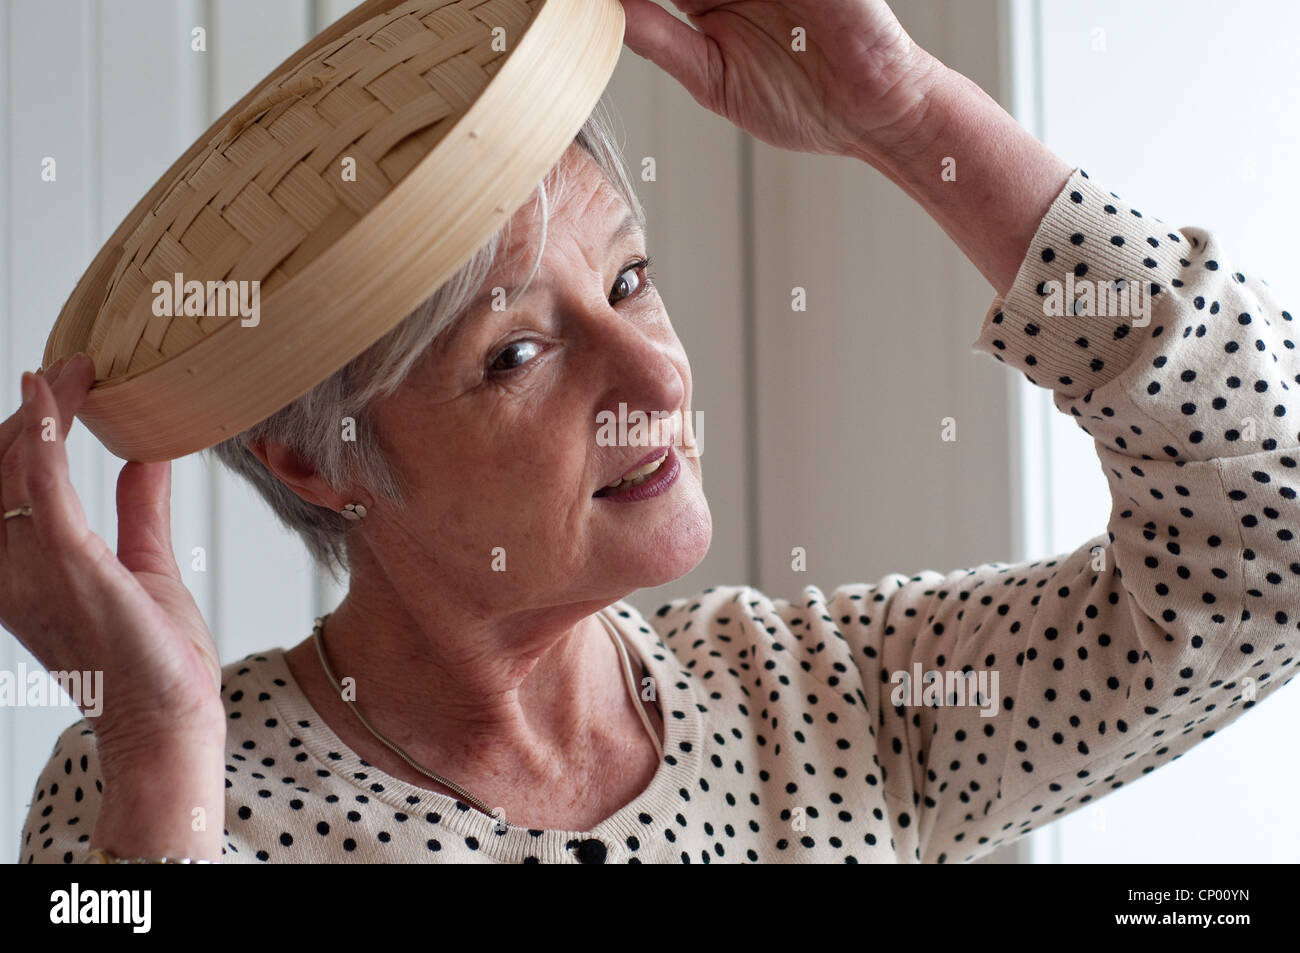 Middle aged woman playing with bamboo lid in kitchen - Stock Image